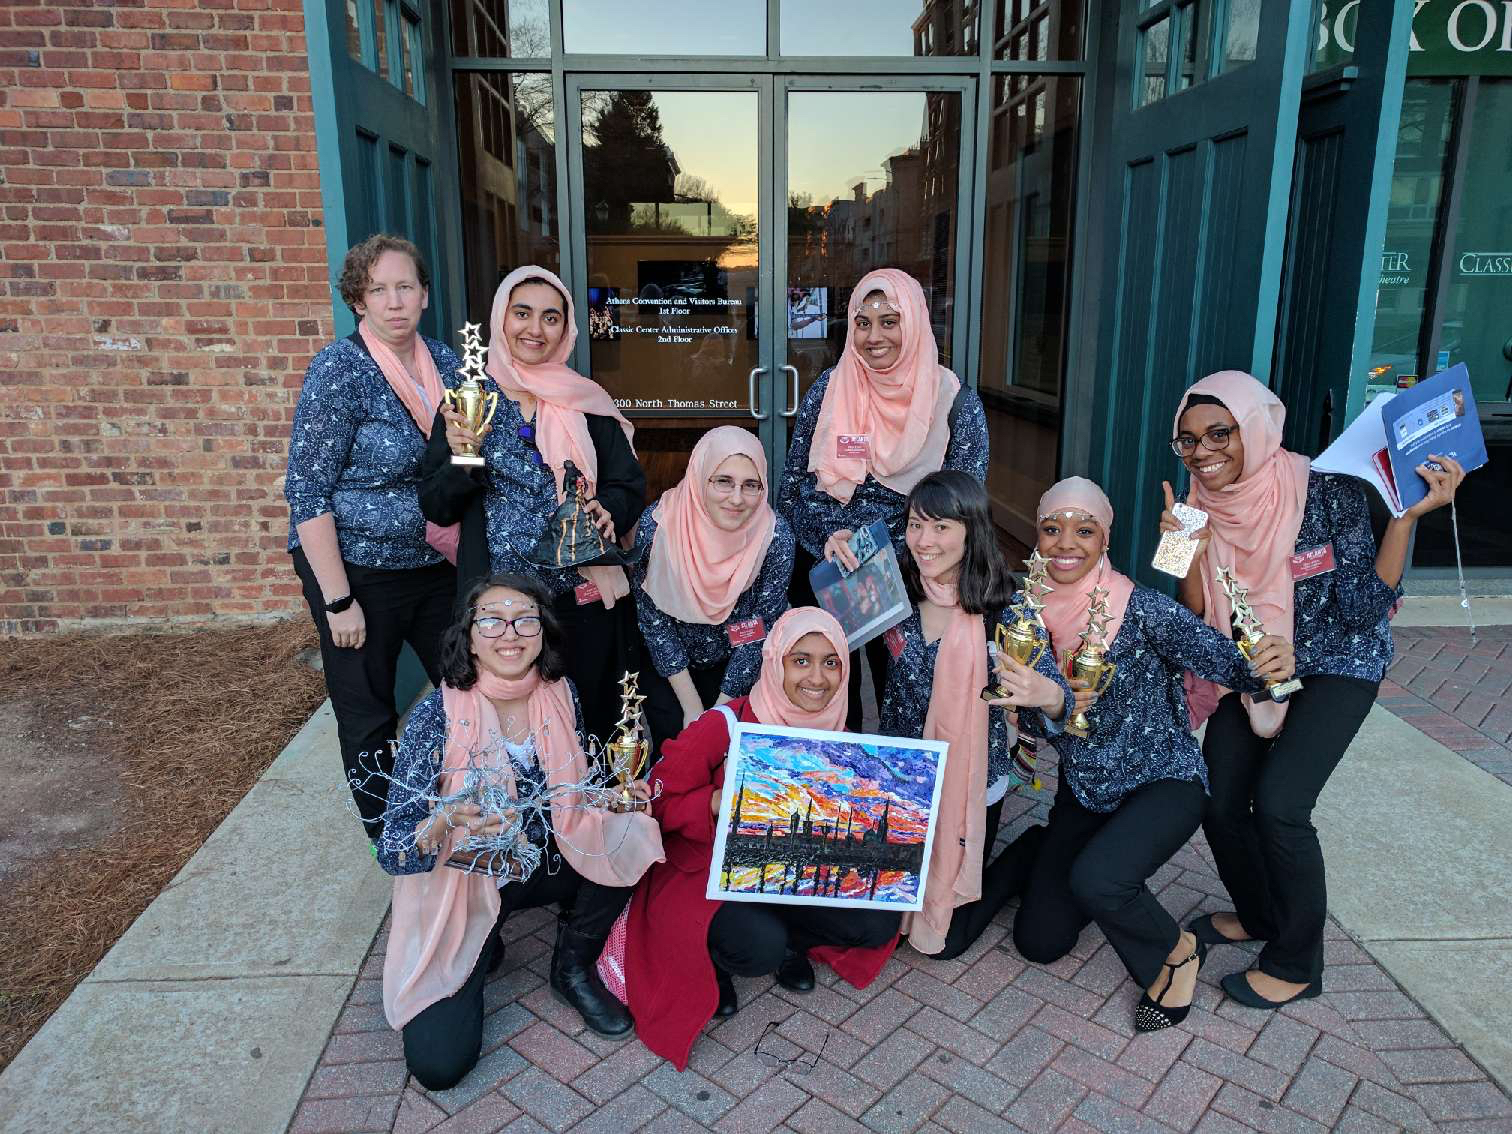 The Grady Muslim Students Association showcase their awards won during MIST, including second in photography, first and third in 3D art, and first place in spoken word.